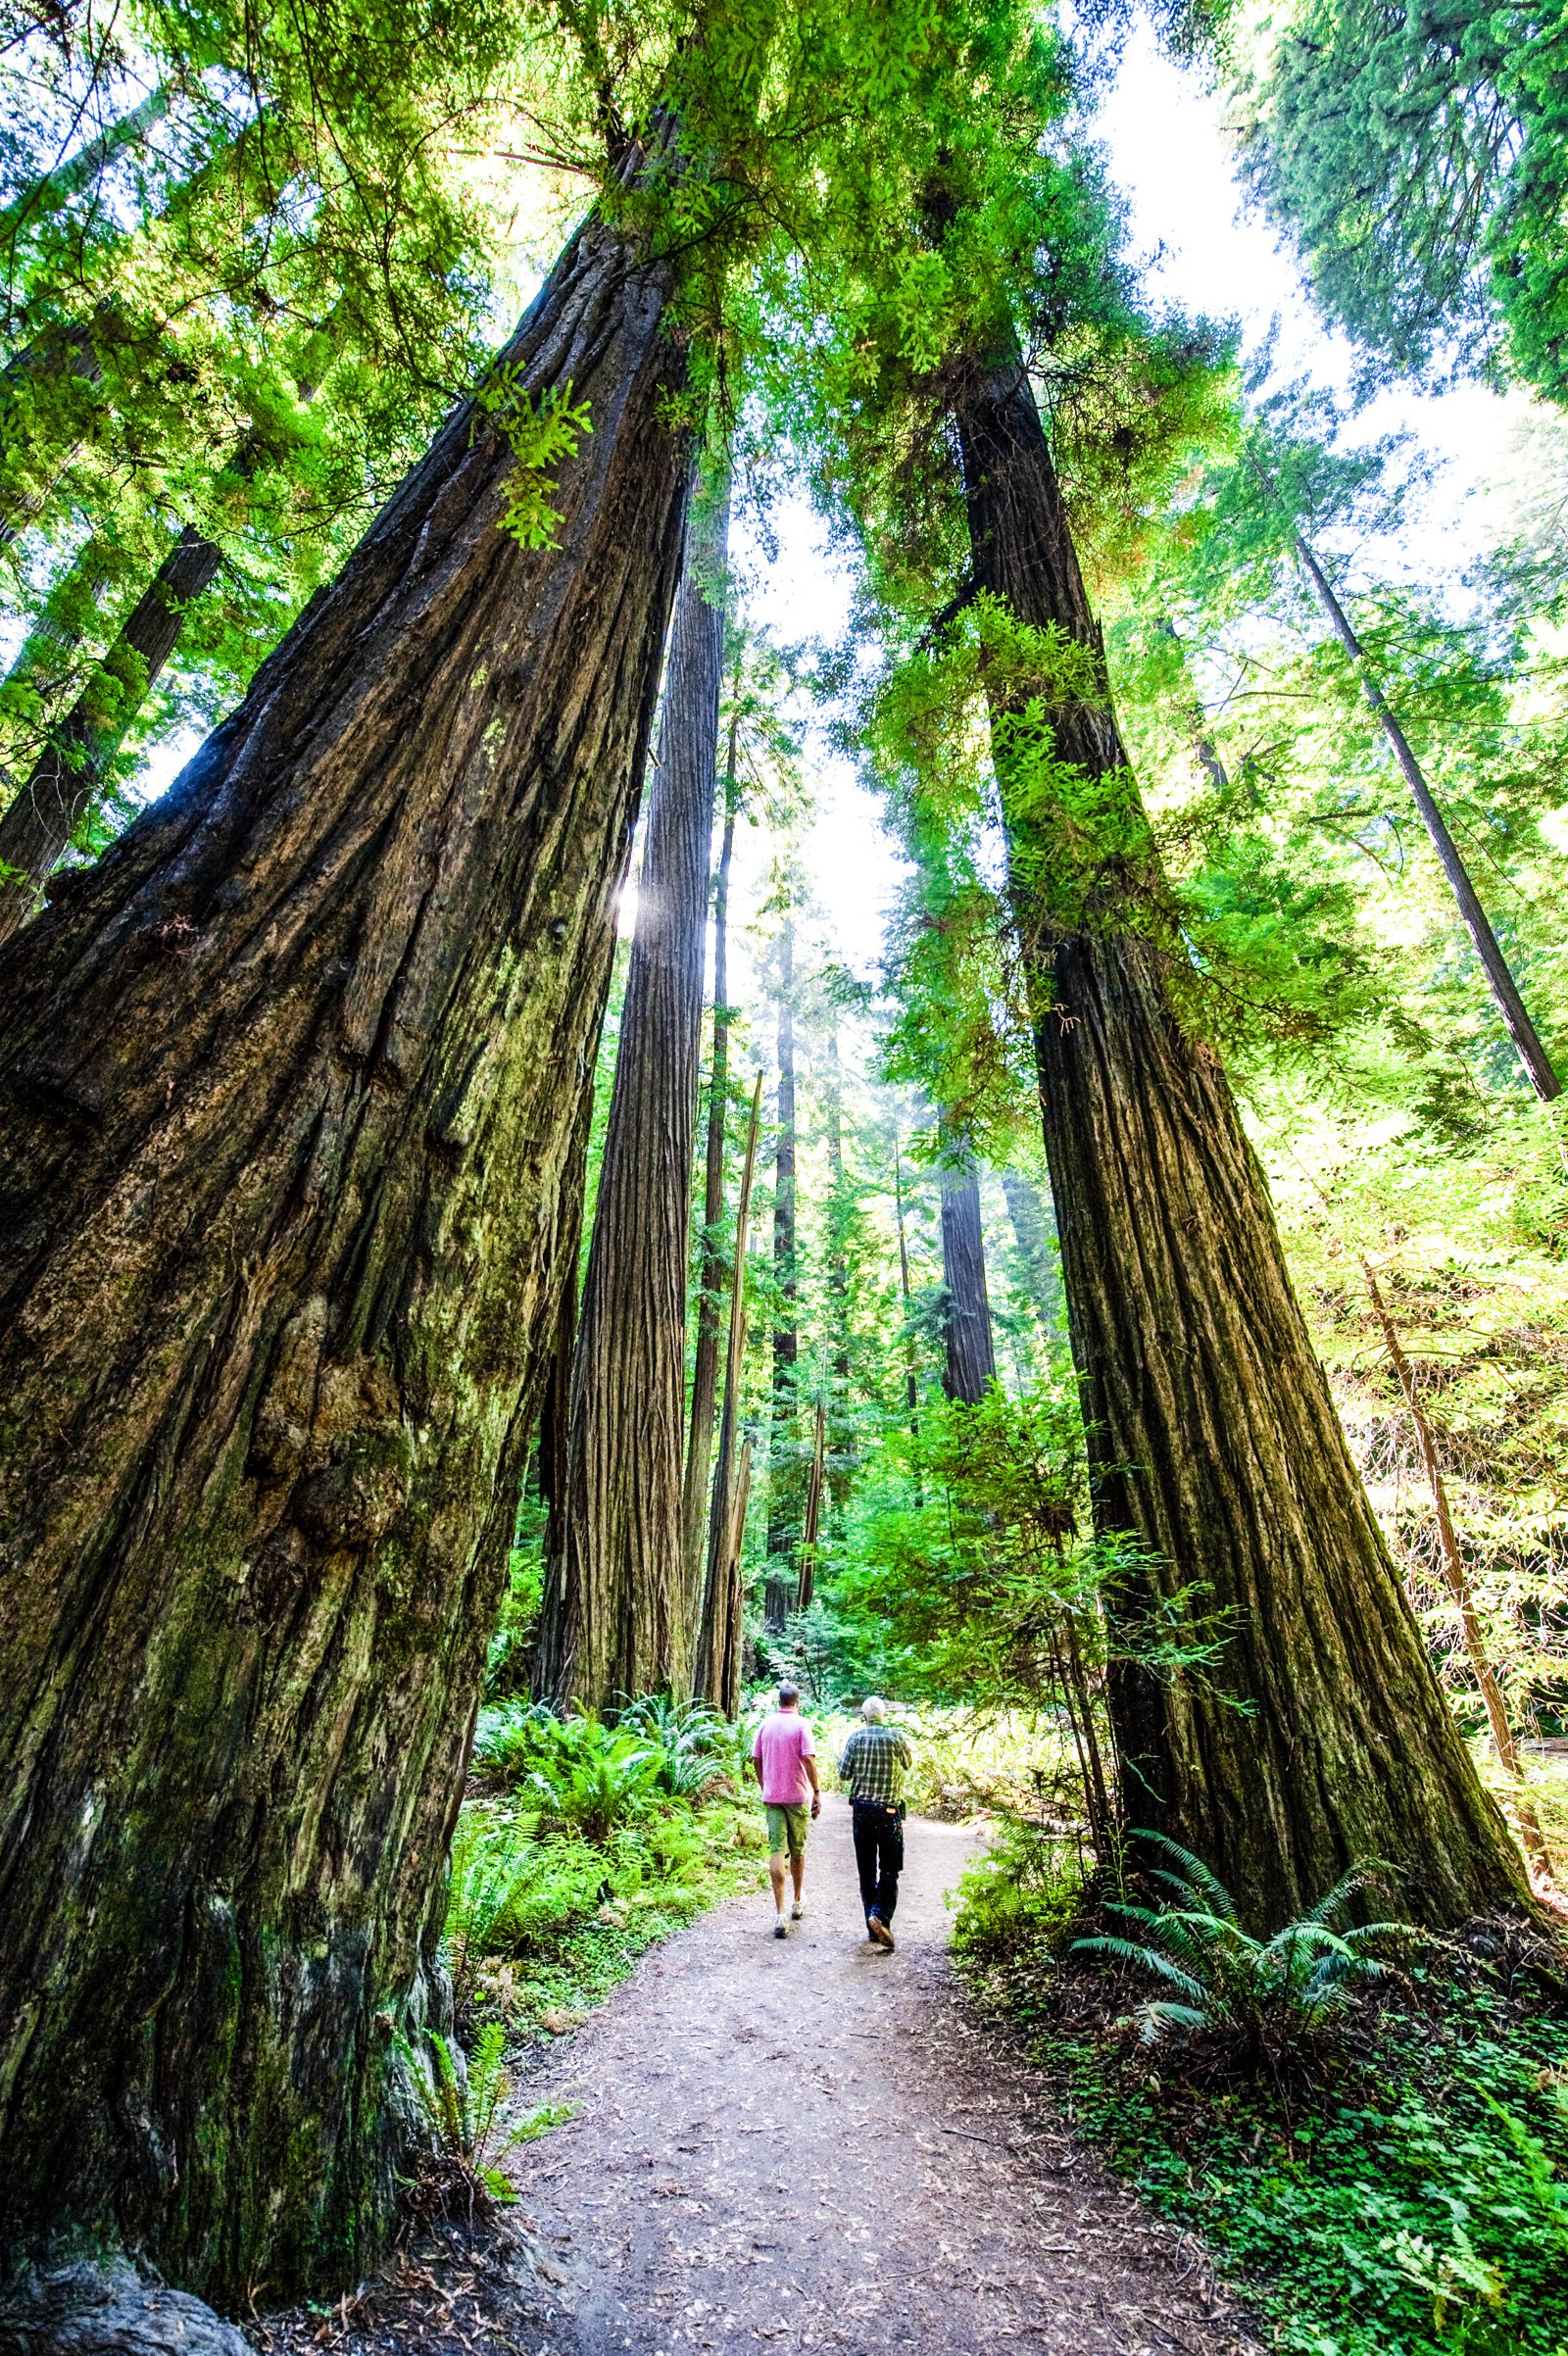 The Ultimate California Road Trip: 19 Places To Stop, Eat, See and Explore (10)